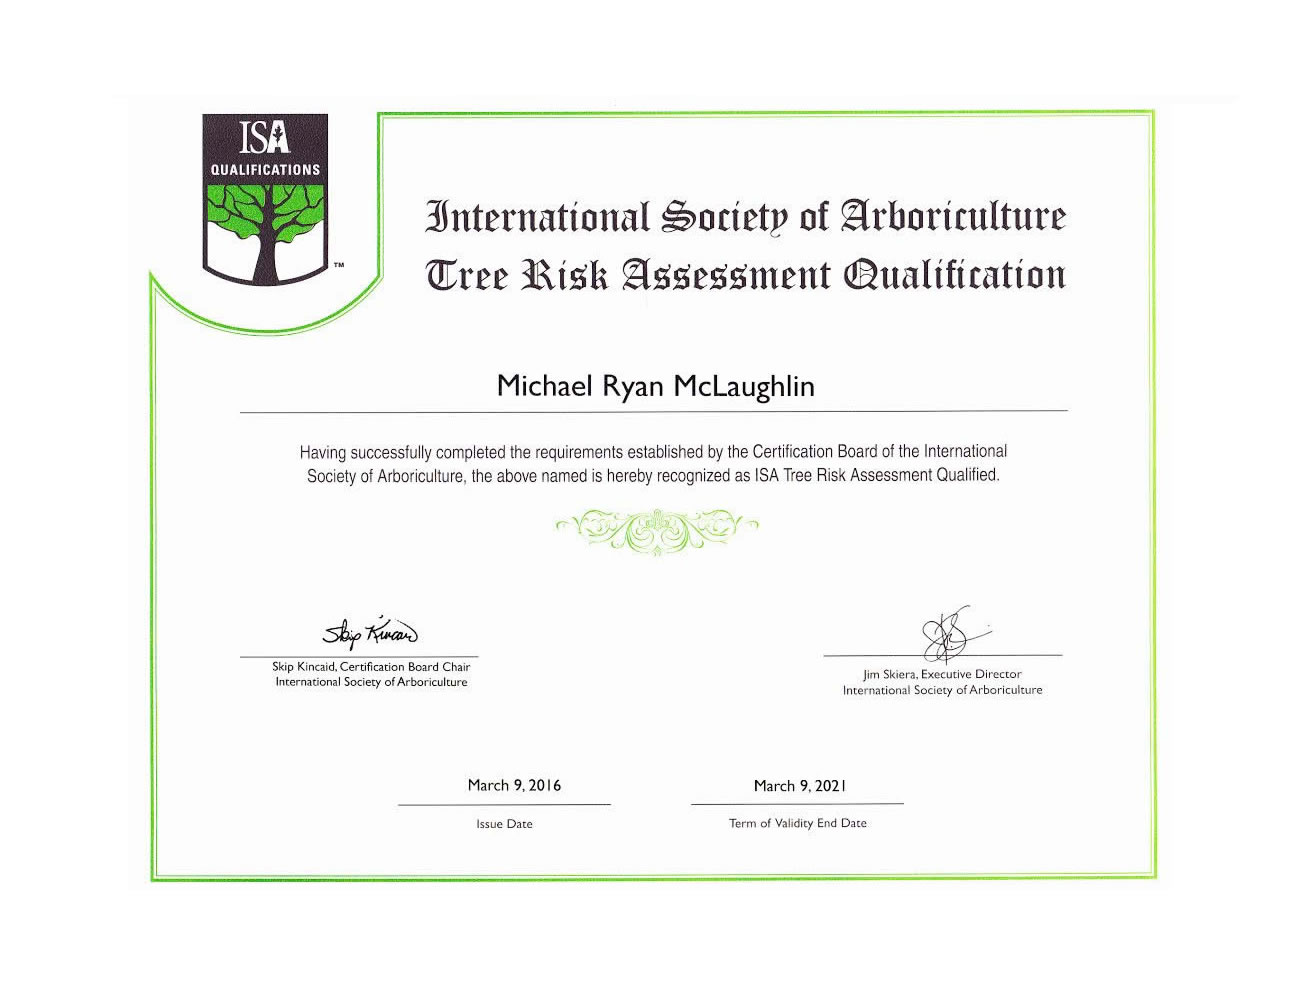 International Society of Arboriculture - Tree Risk Assessment Qualification